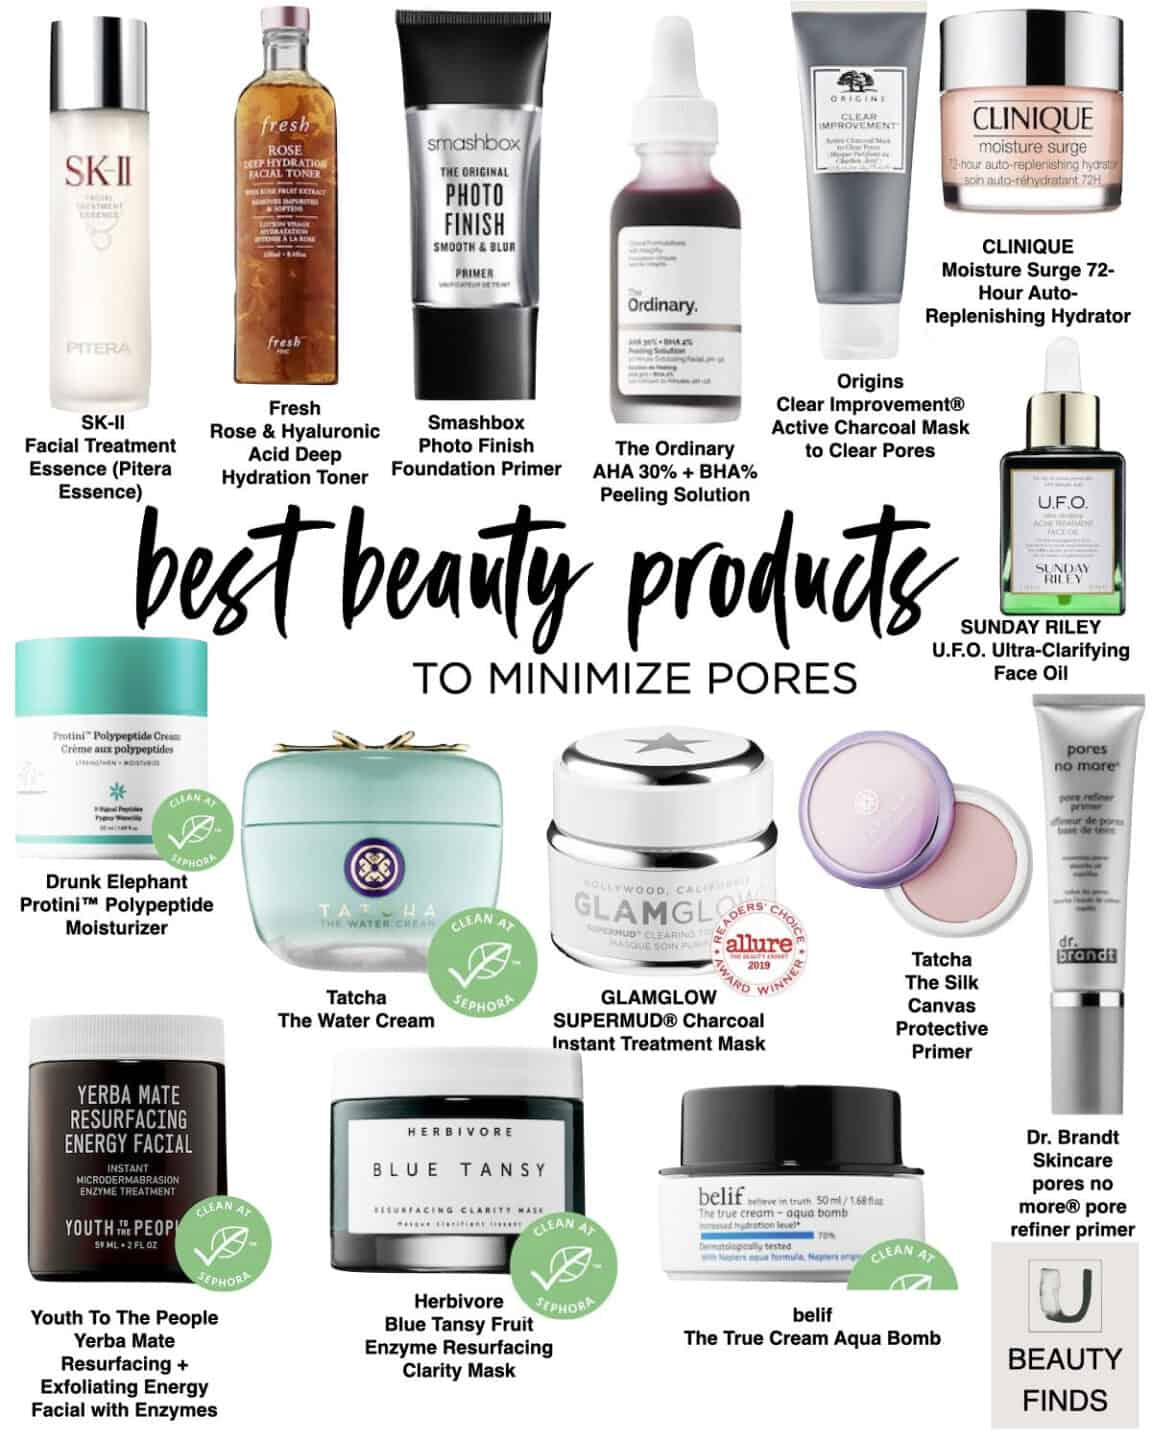 Skincare Best Sellers to Minimize Pores